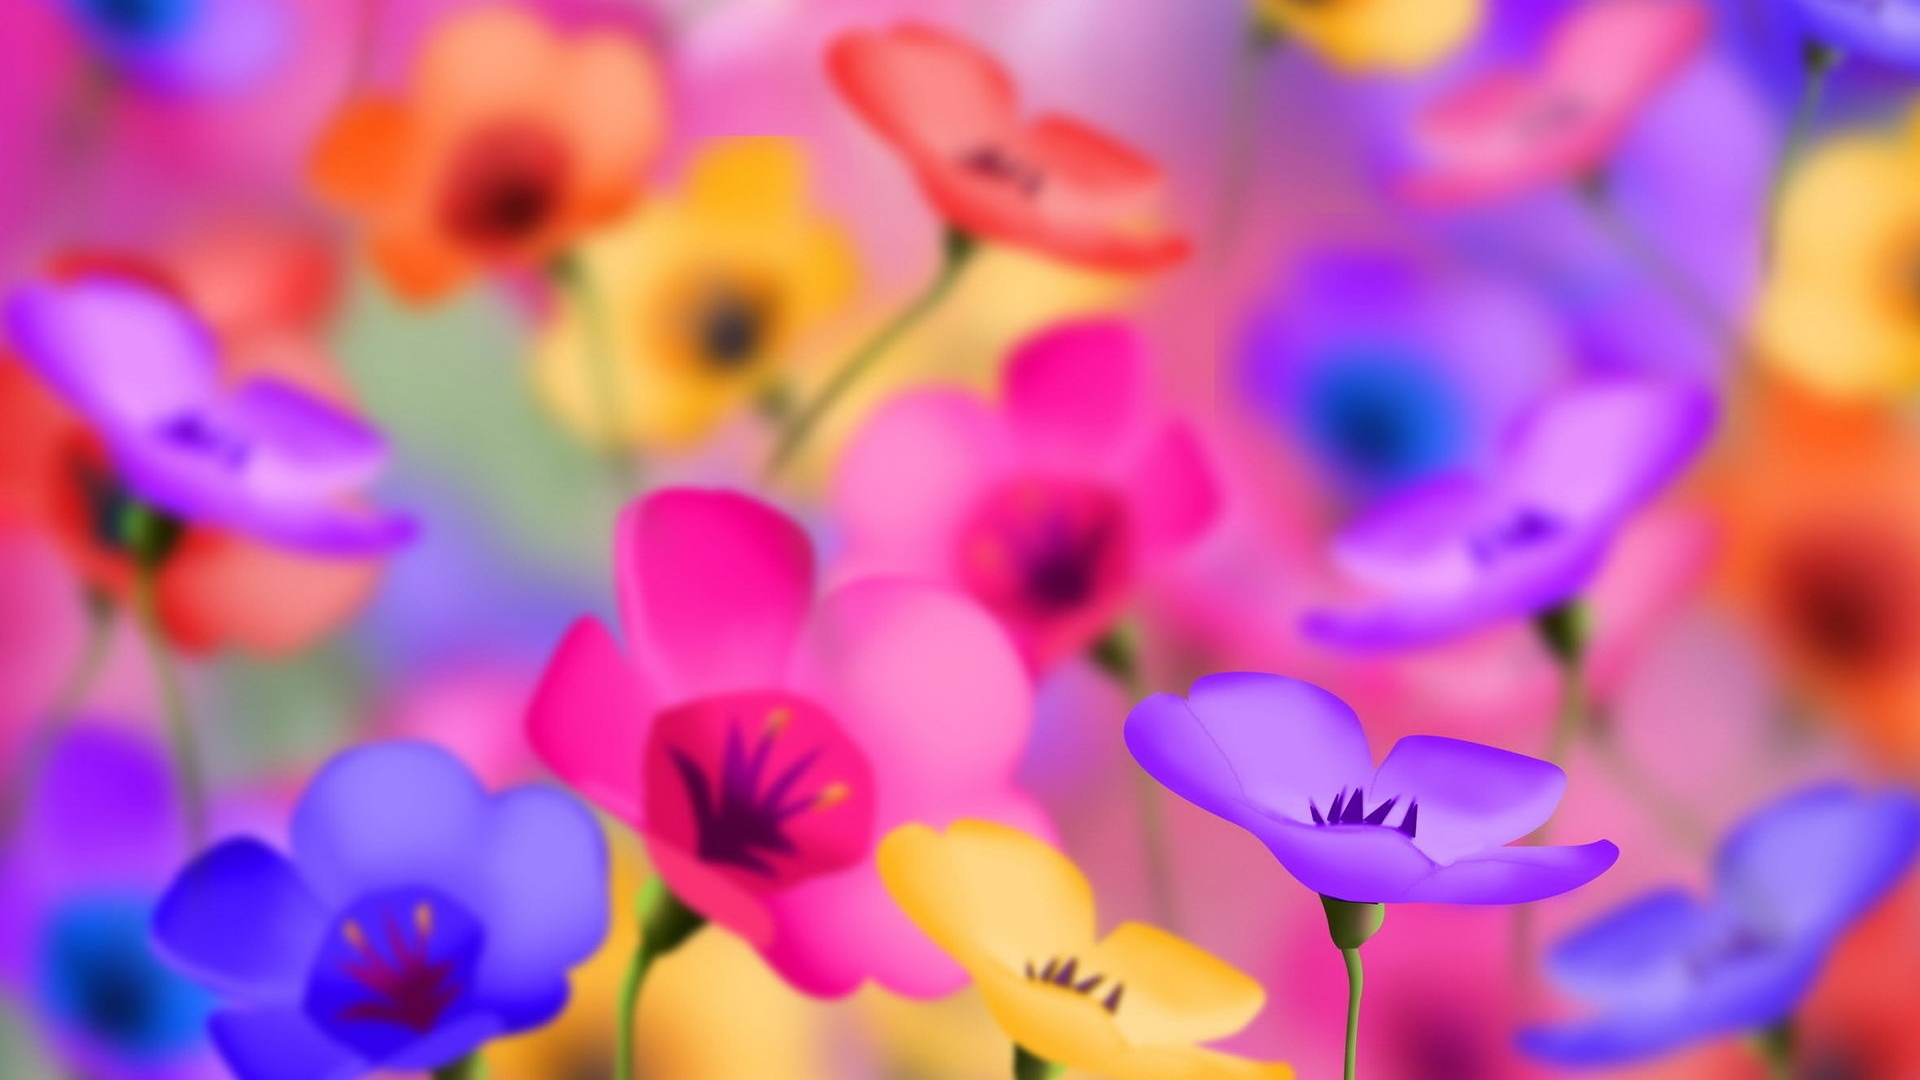 Desktop wallpaper hd 1920x1080 flowers